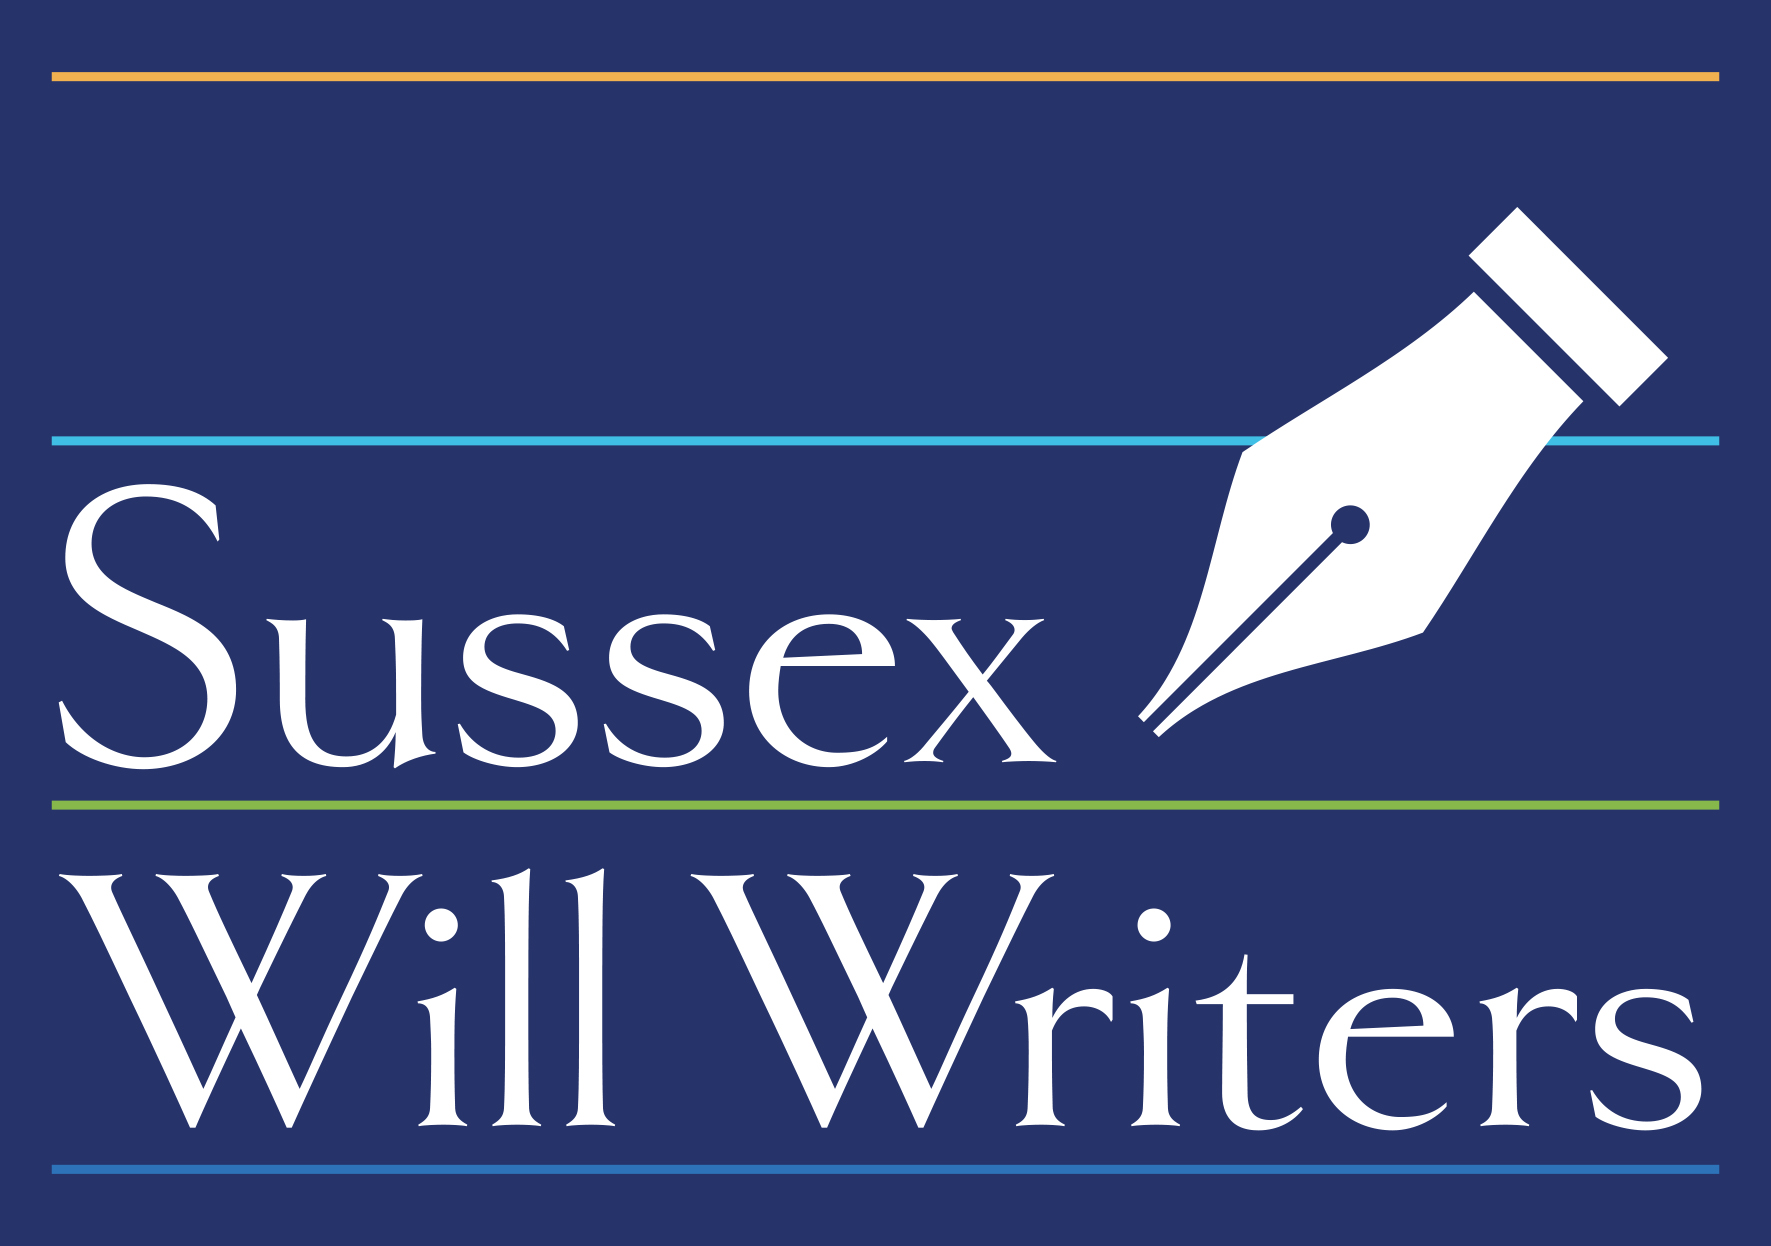 Sussex Will Writers